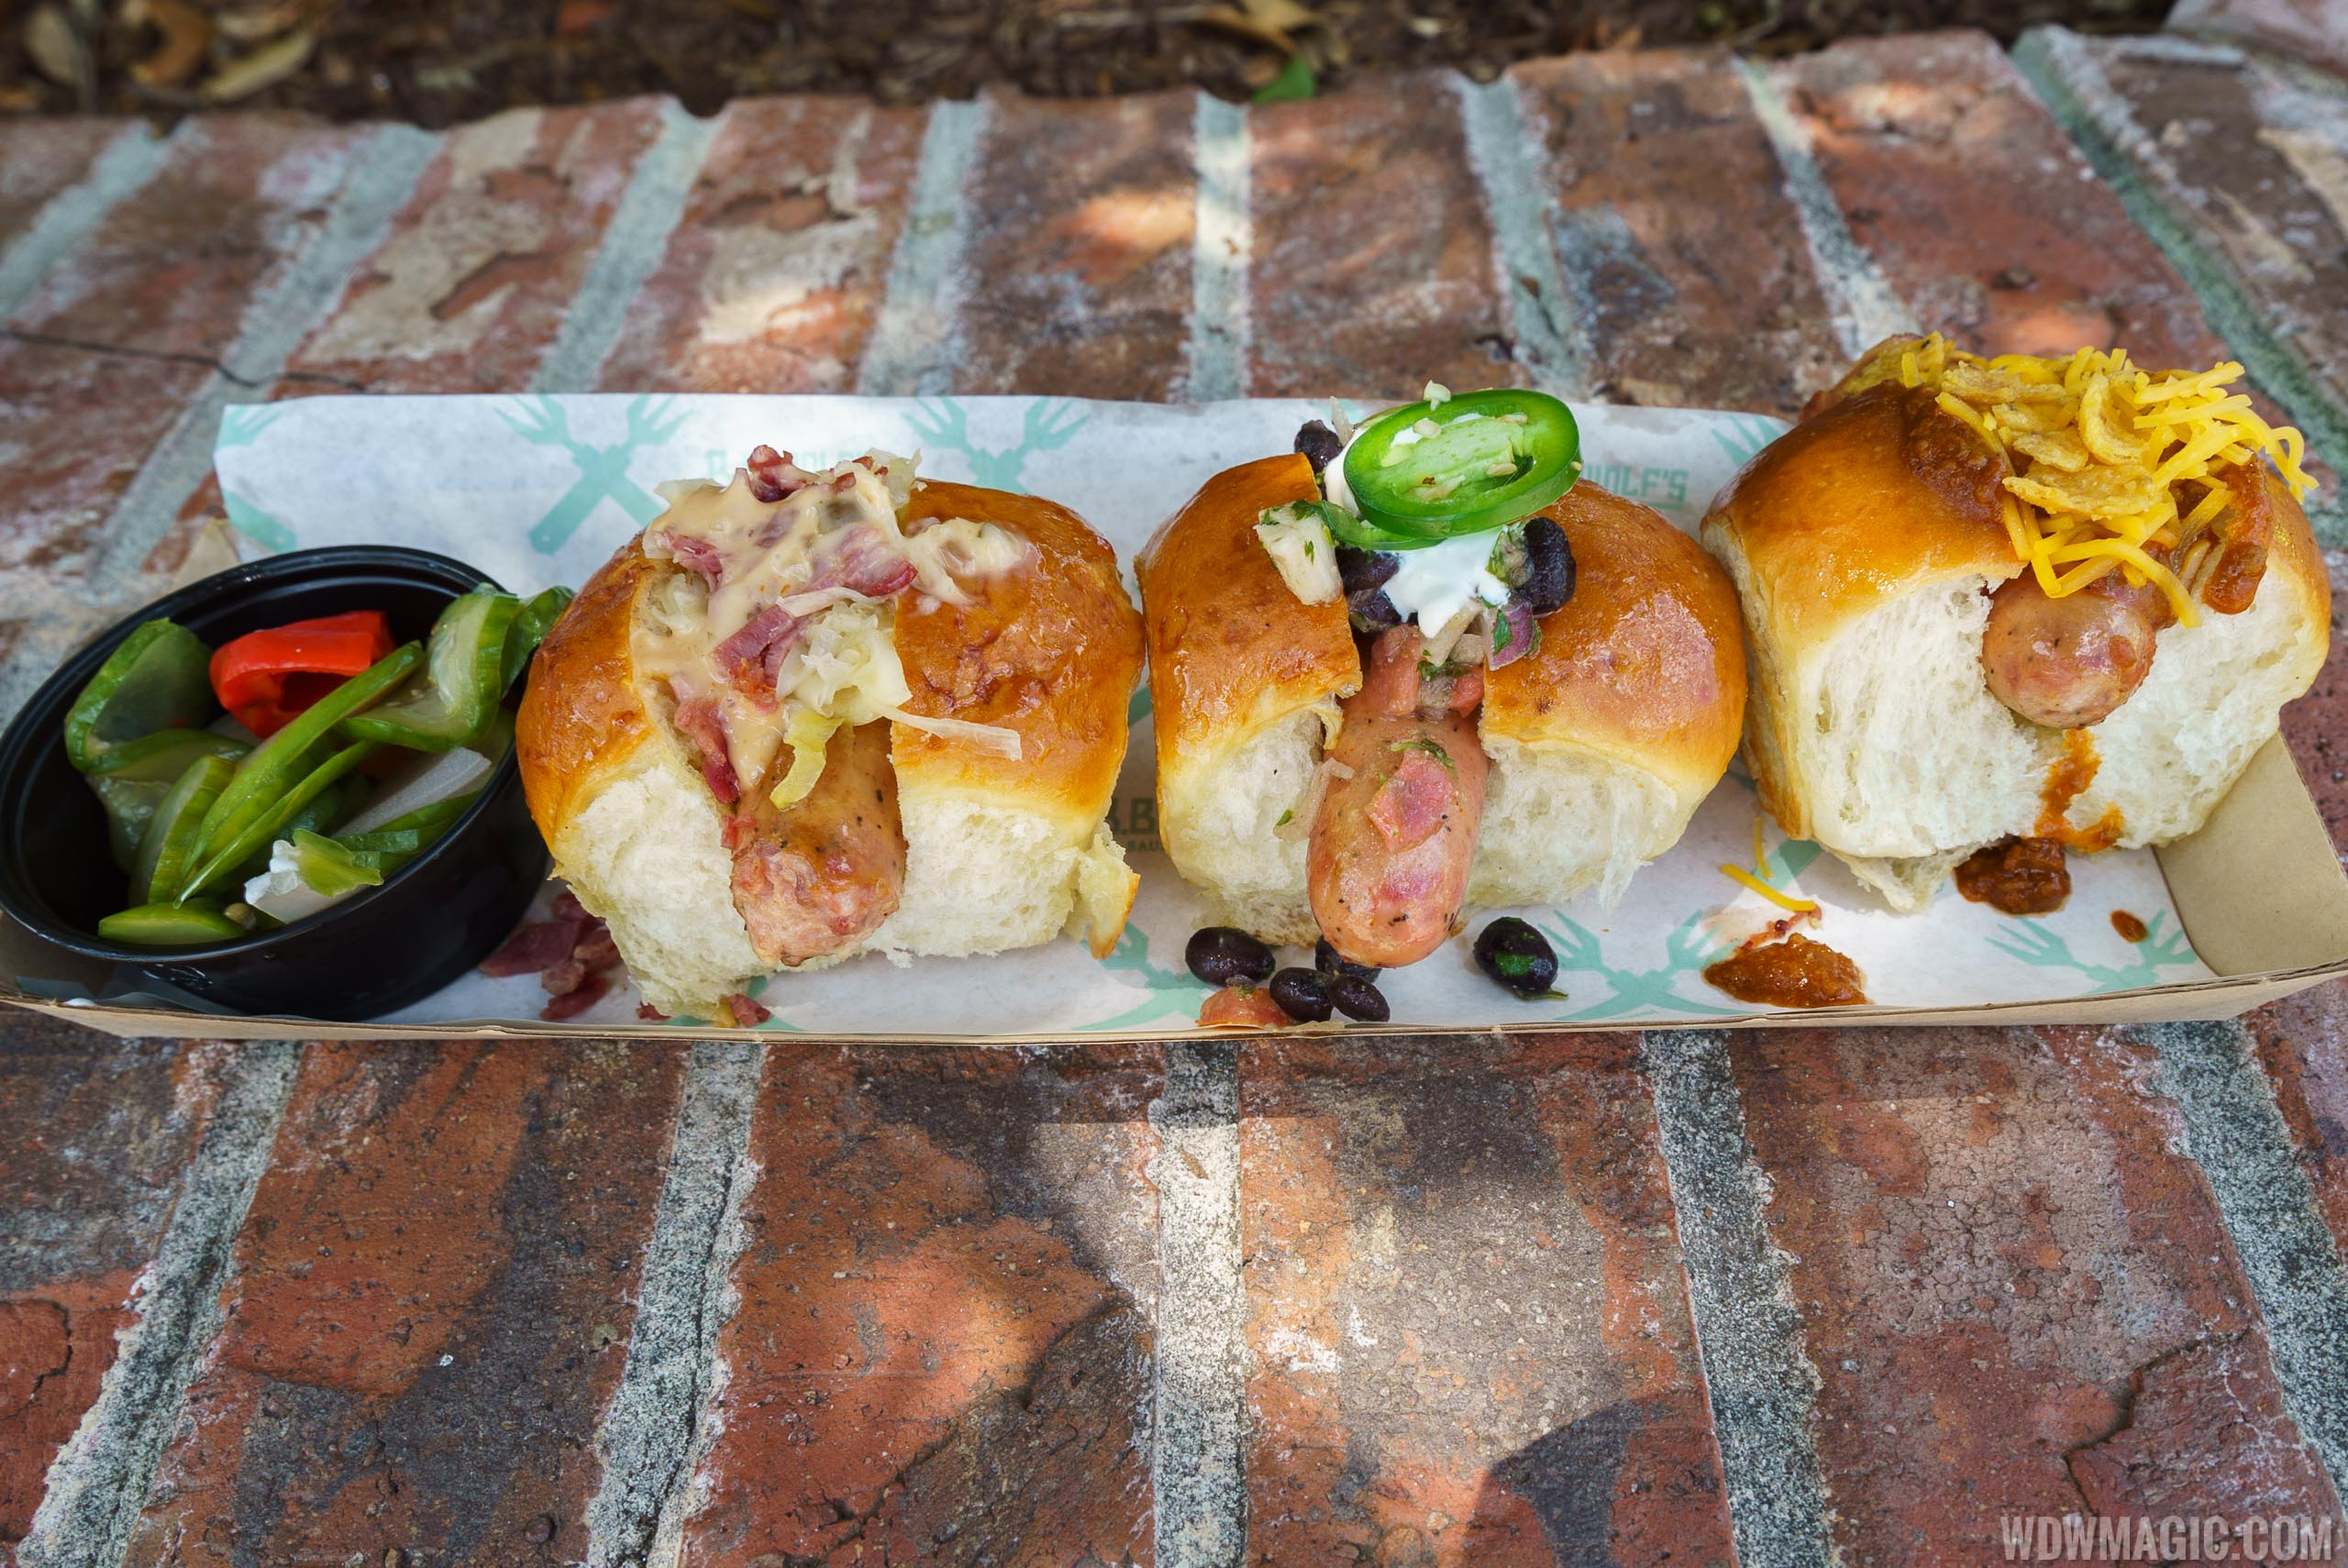 B.B. Wolf's Sausage Co. - 3 Little Pigs Sampler - Reuben, Bacon-wrapped with Black Bean Salsa, and Chili Cheese